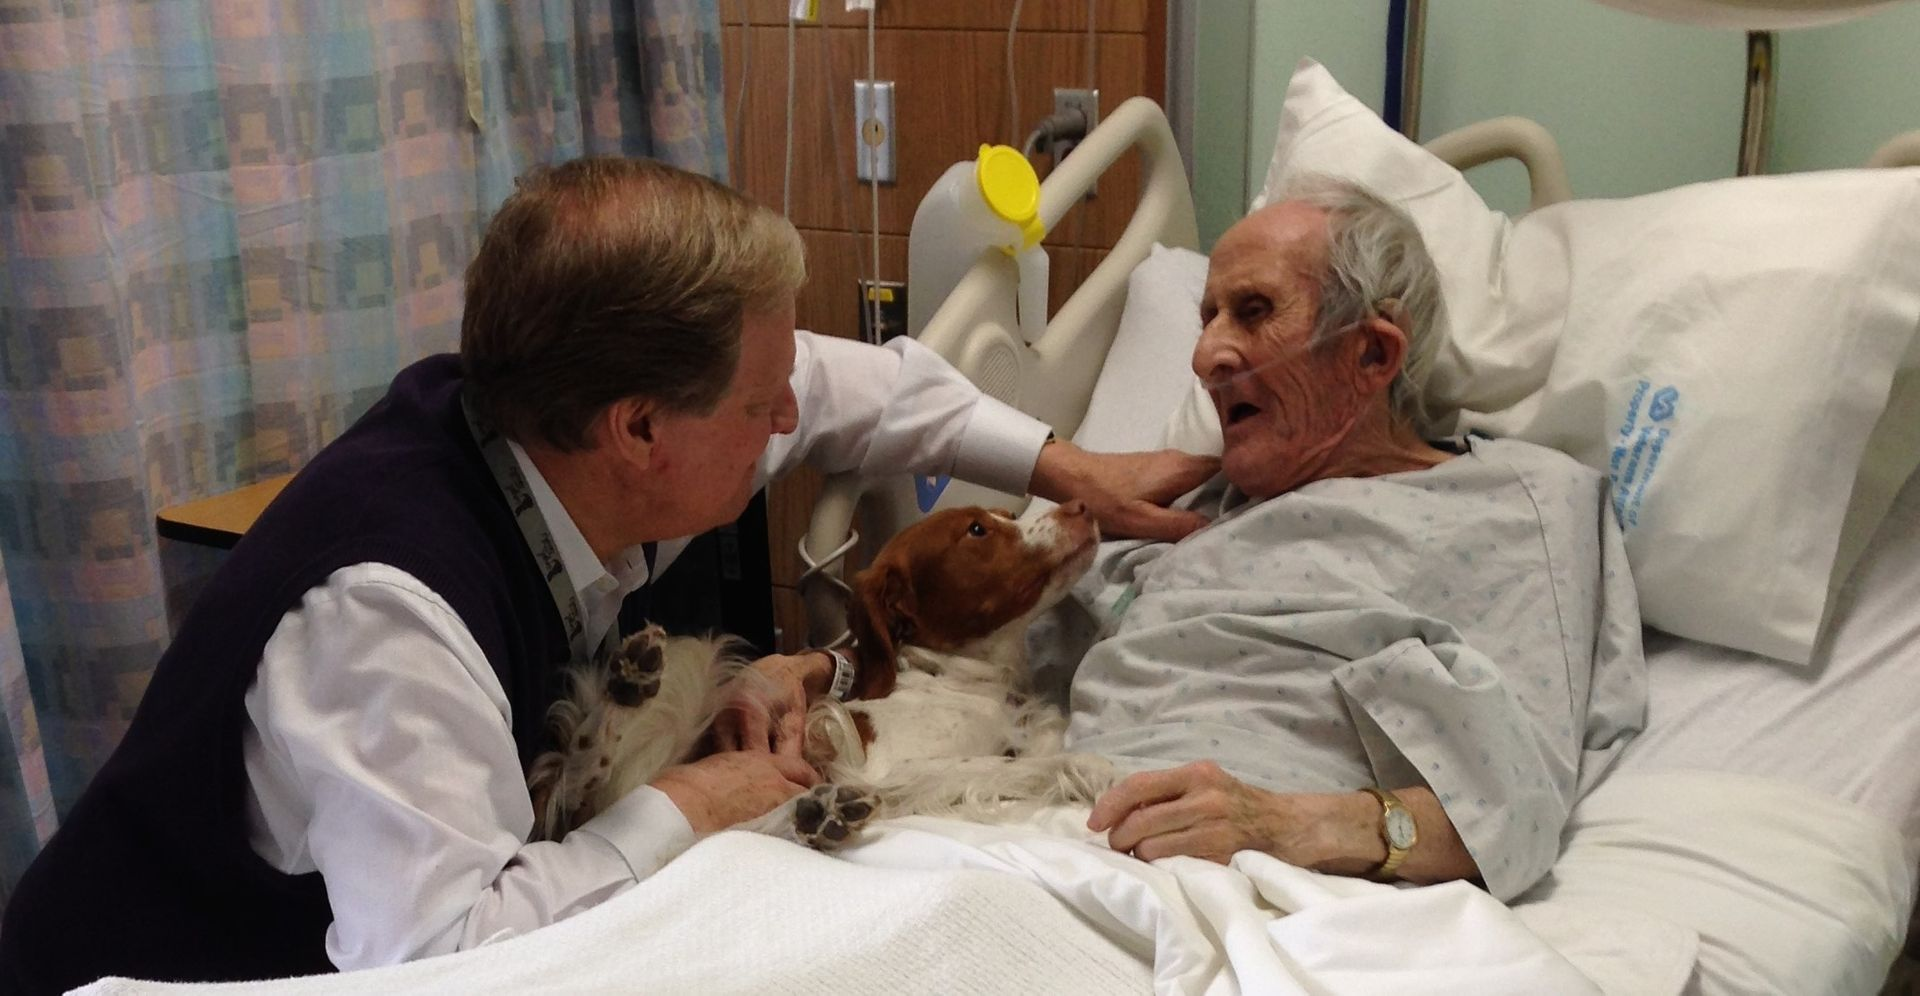 David Frei and a therapy dog comfort a hospital patient.